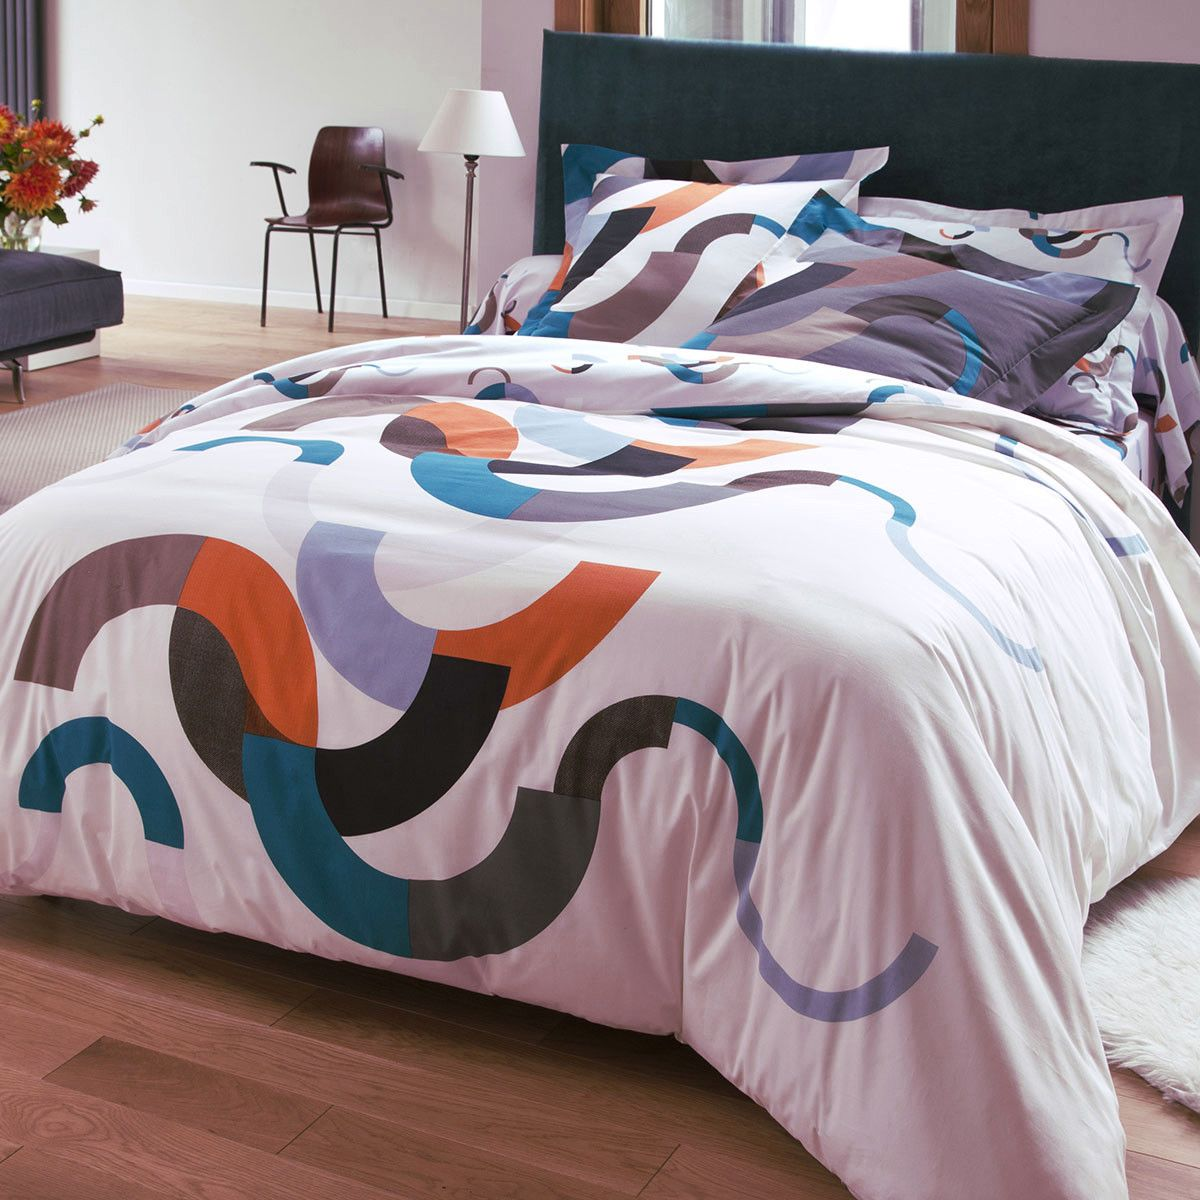 Fitted Sheet Fabre